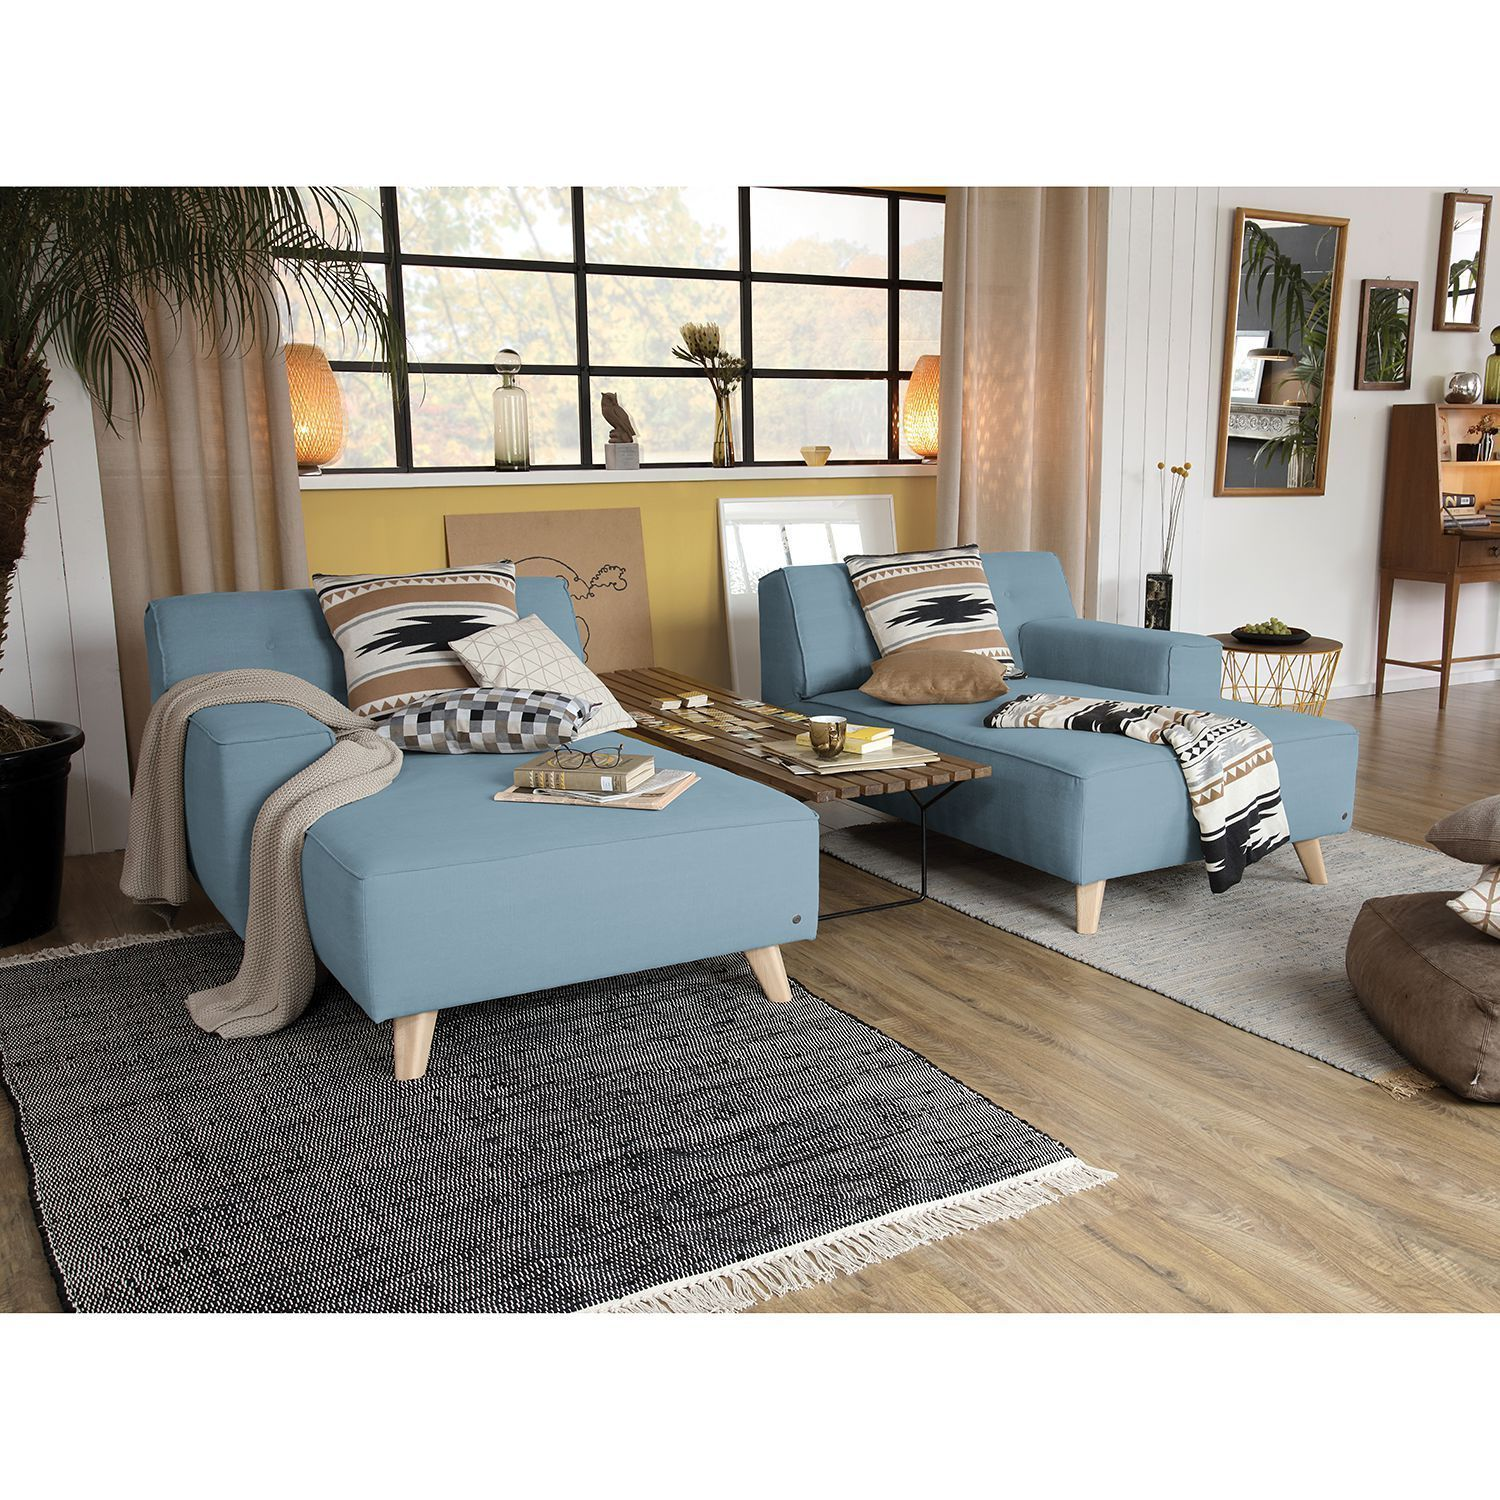 Recamiere Nordic Chic Webstoff Io Net Interieur In 2020 Nordic Chic Boho Living Room Farm House Living Room